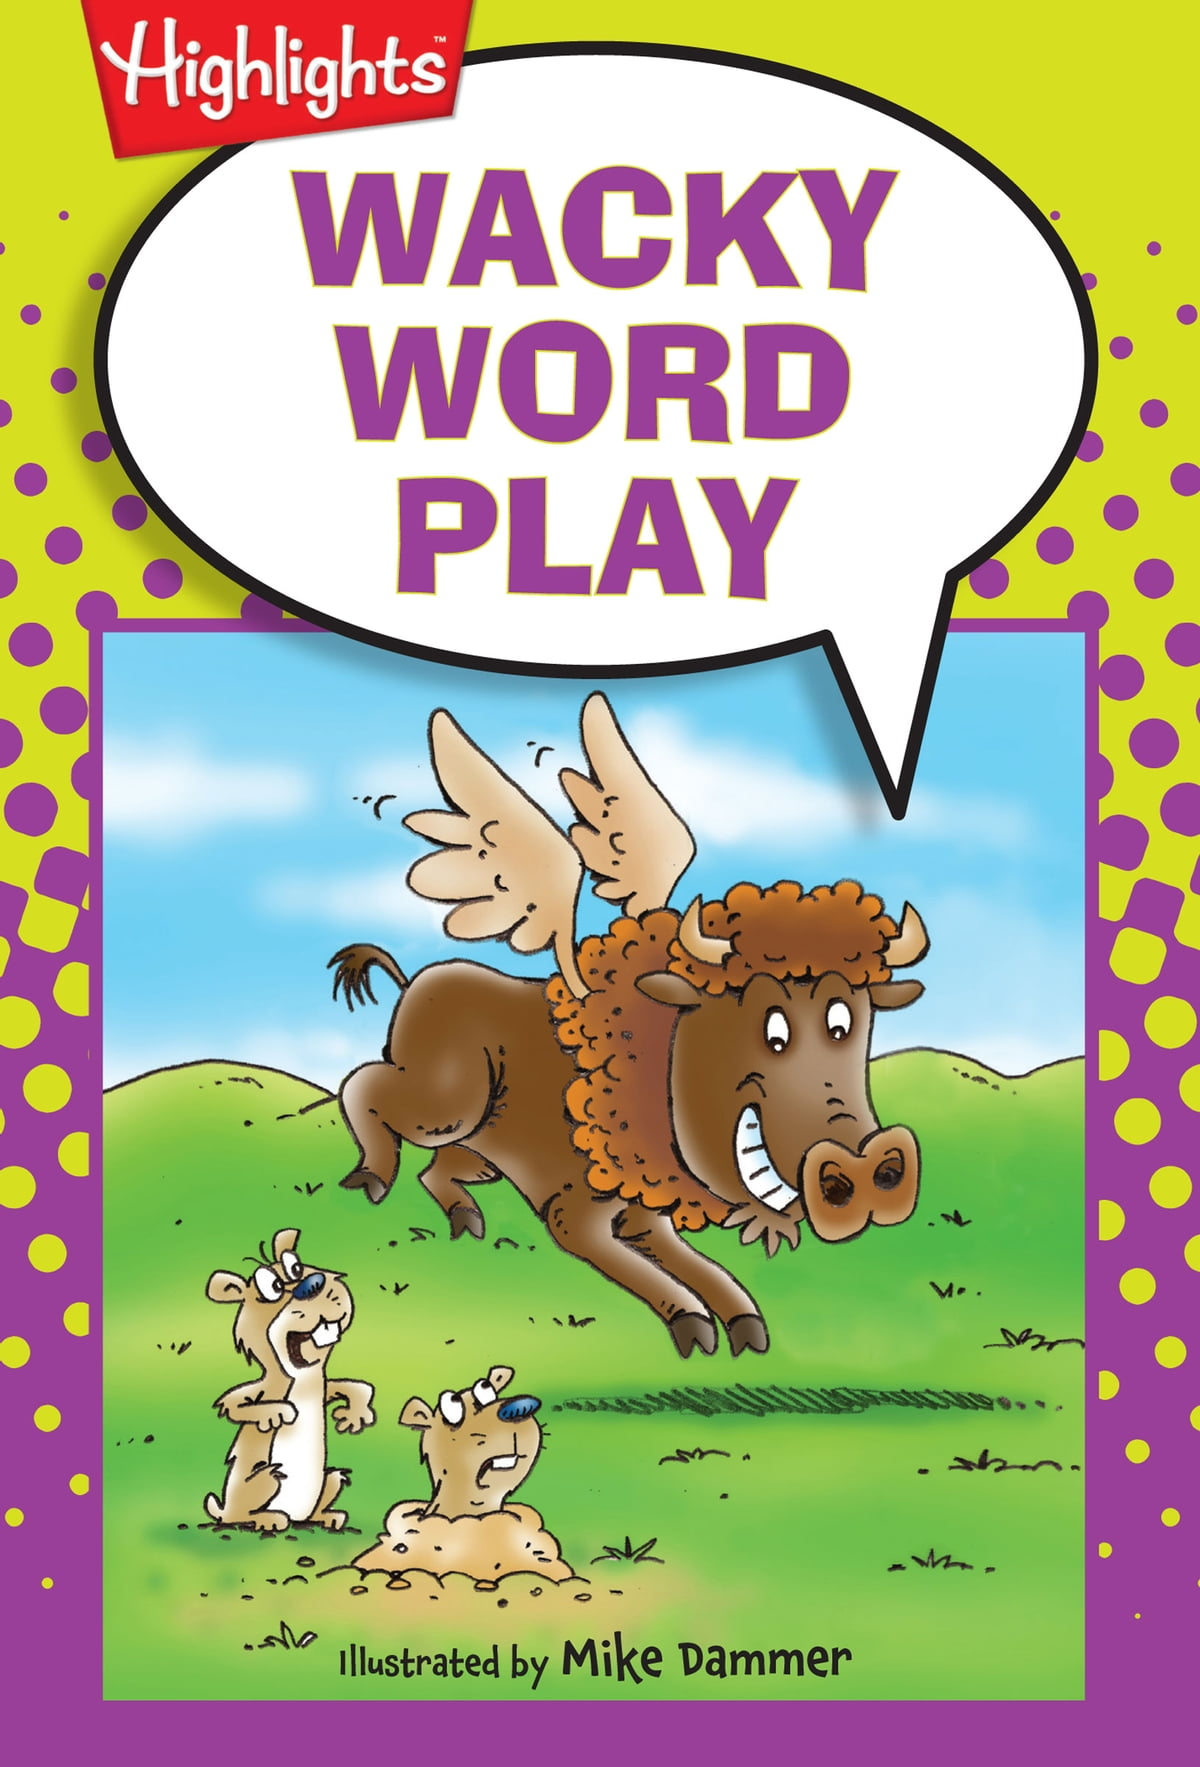 Wacky Word Play Ebook By Highlights For Children